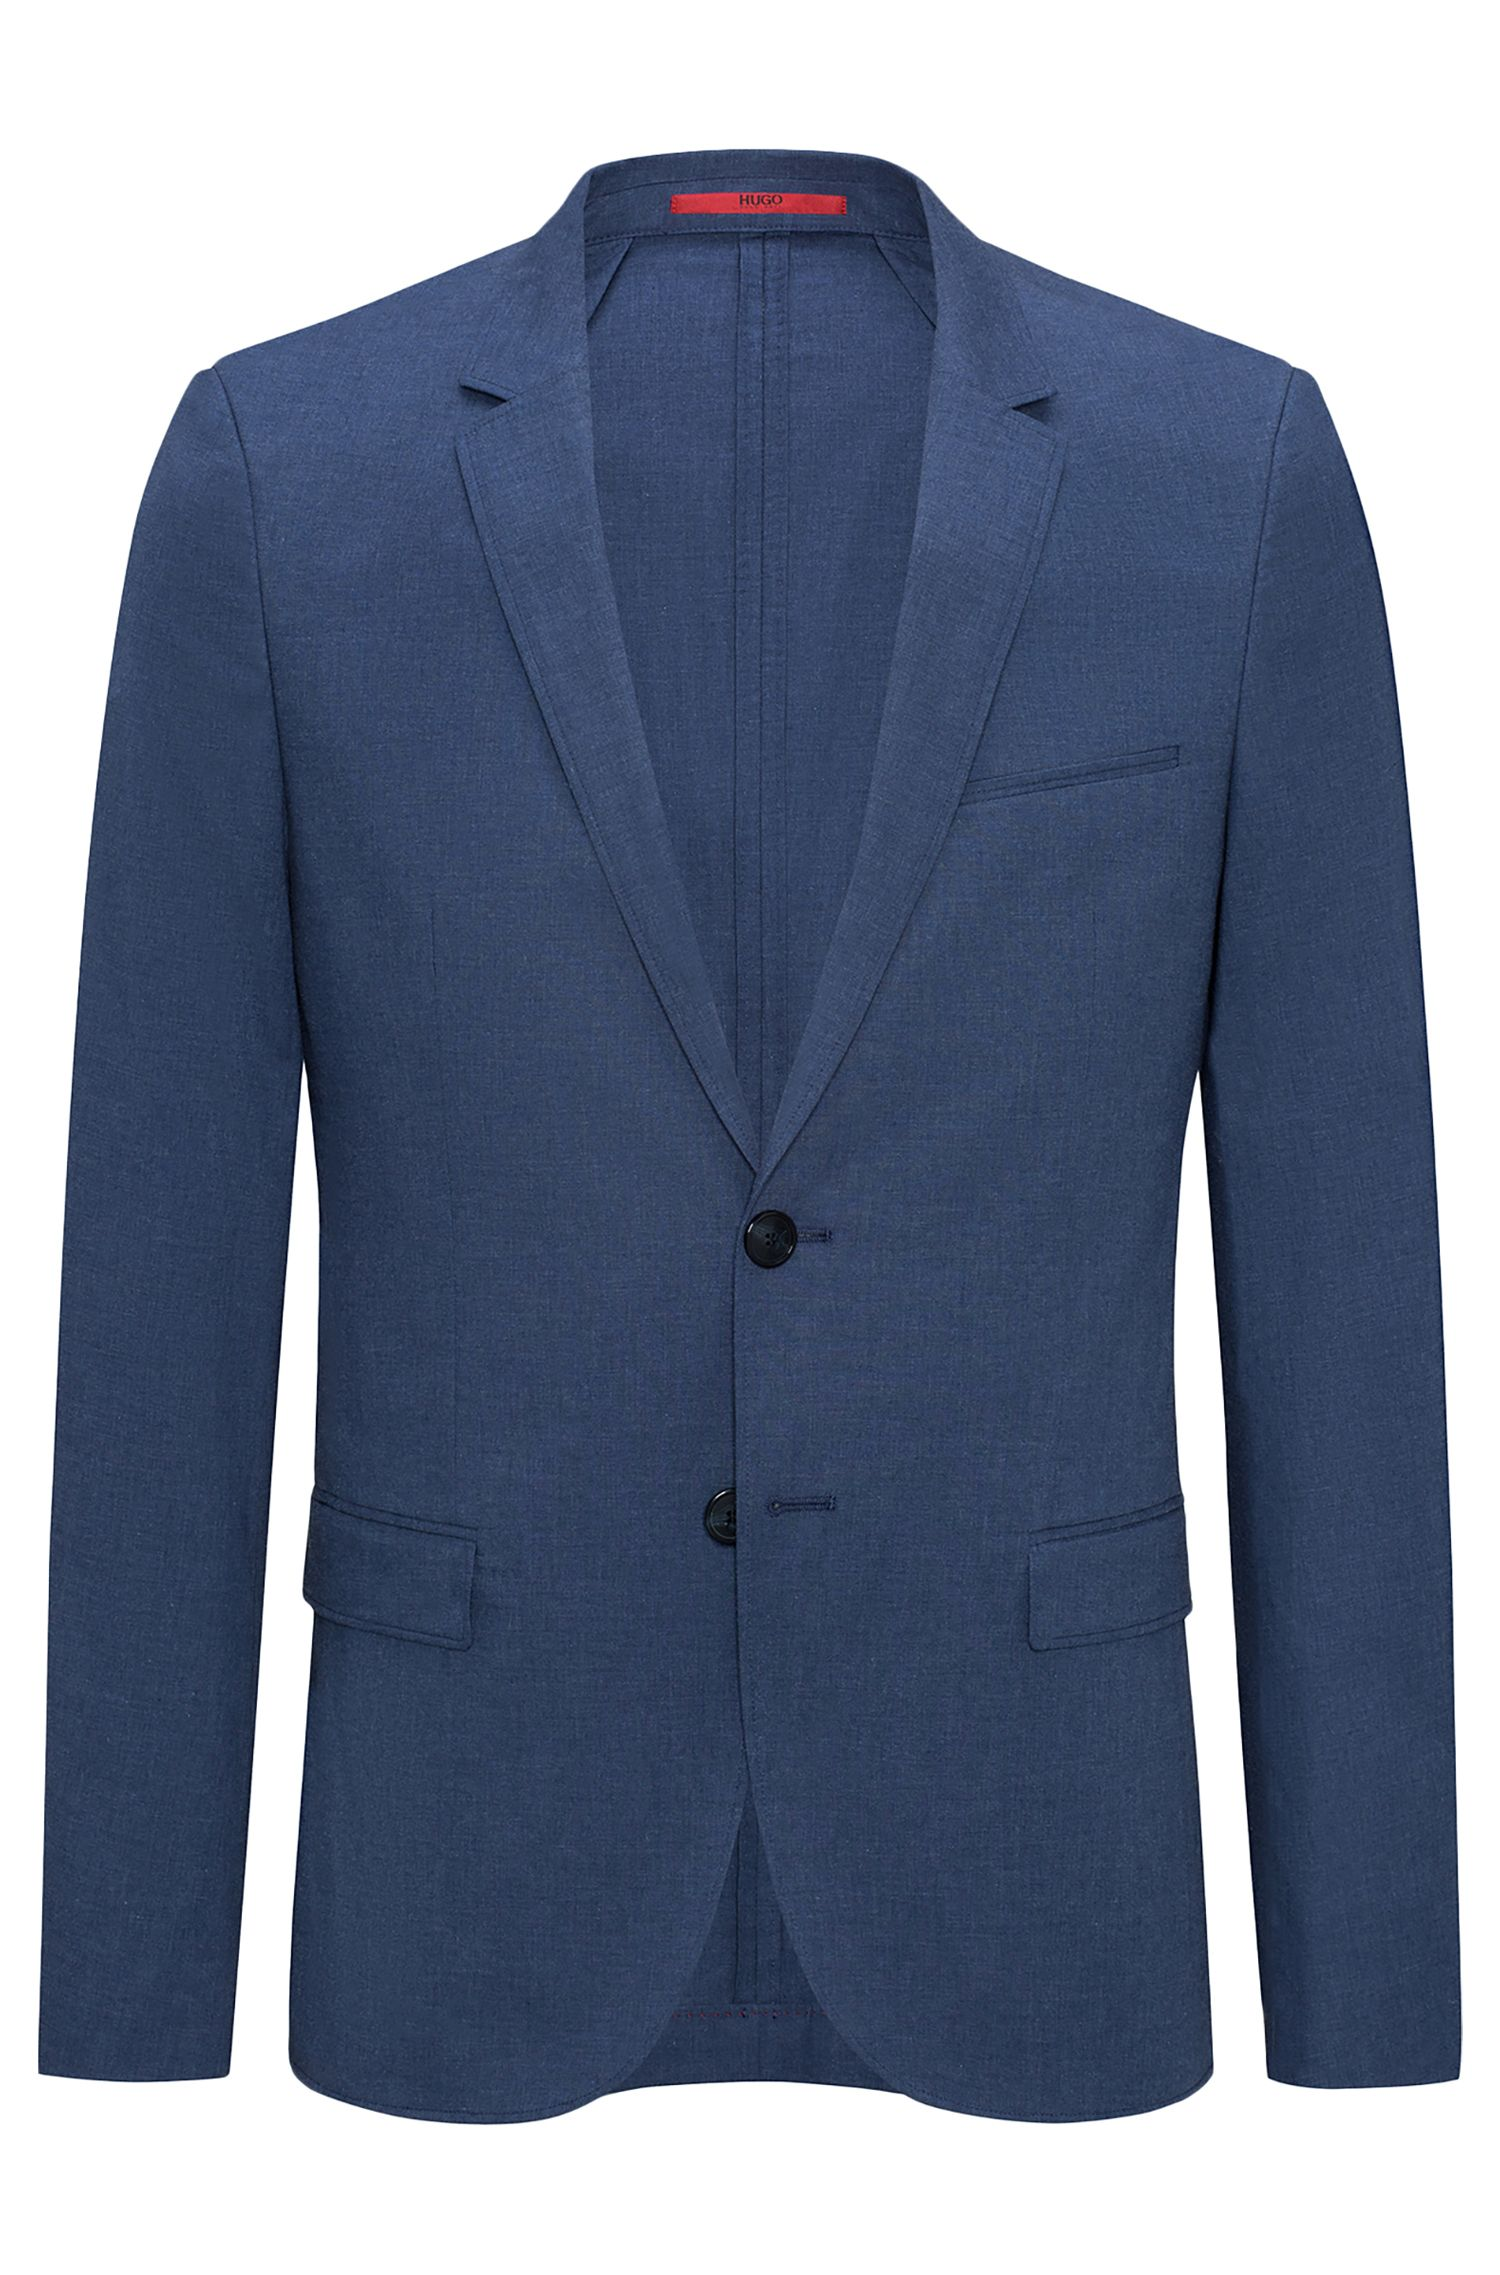 Extra-slim-fit jacket in mélange stretch cotton